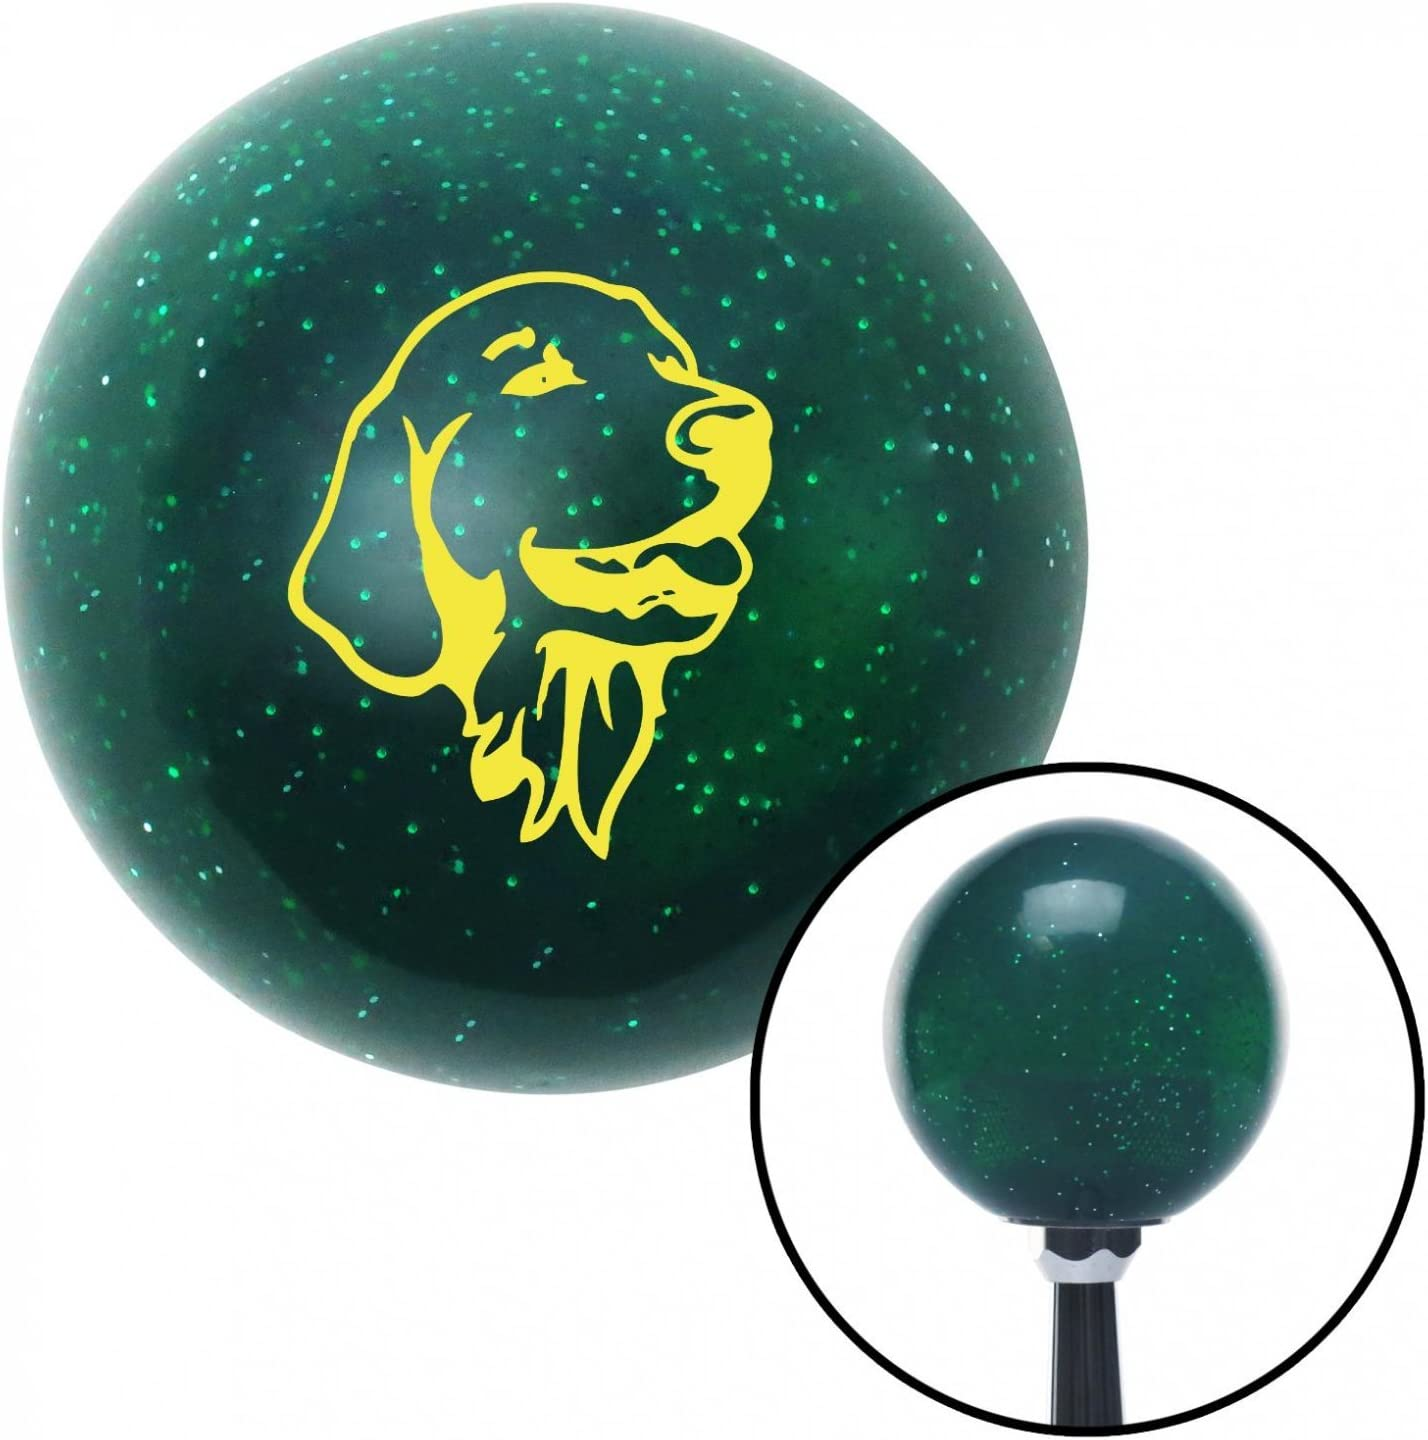 American Shifter 64031 Green Metal Flake Shift Knob with 16mm x 1.5 Insert Yellow Golden Retriever